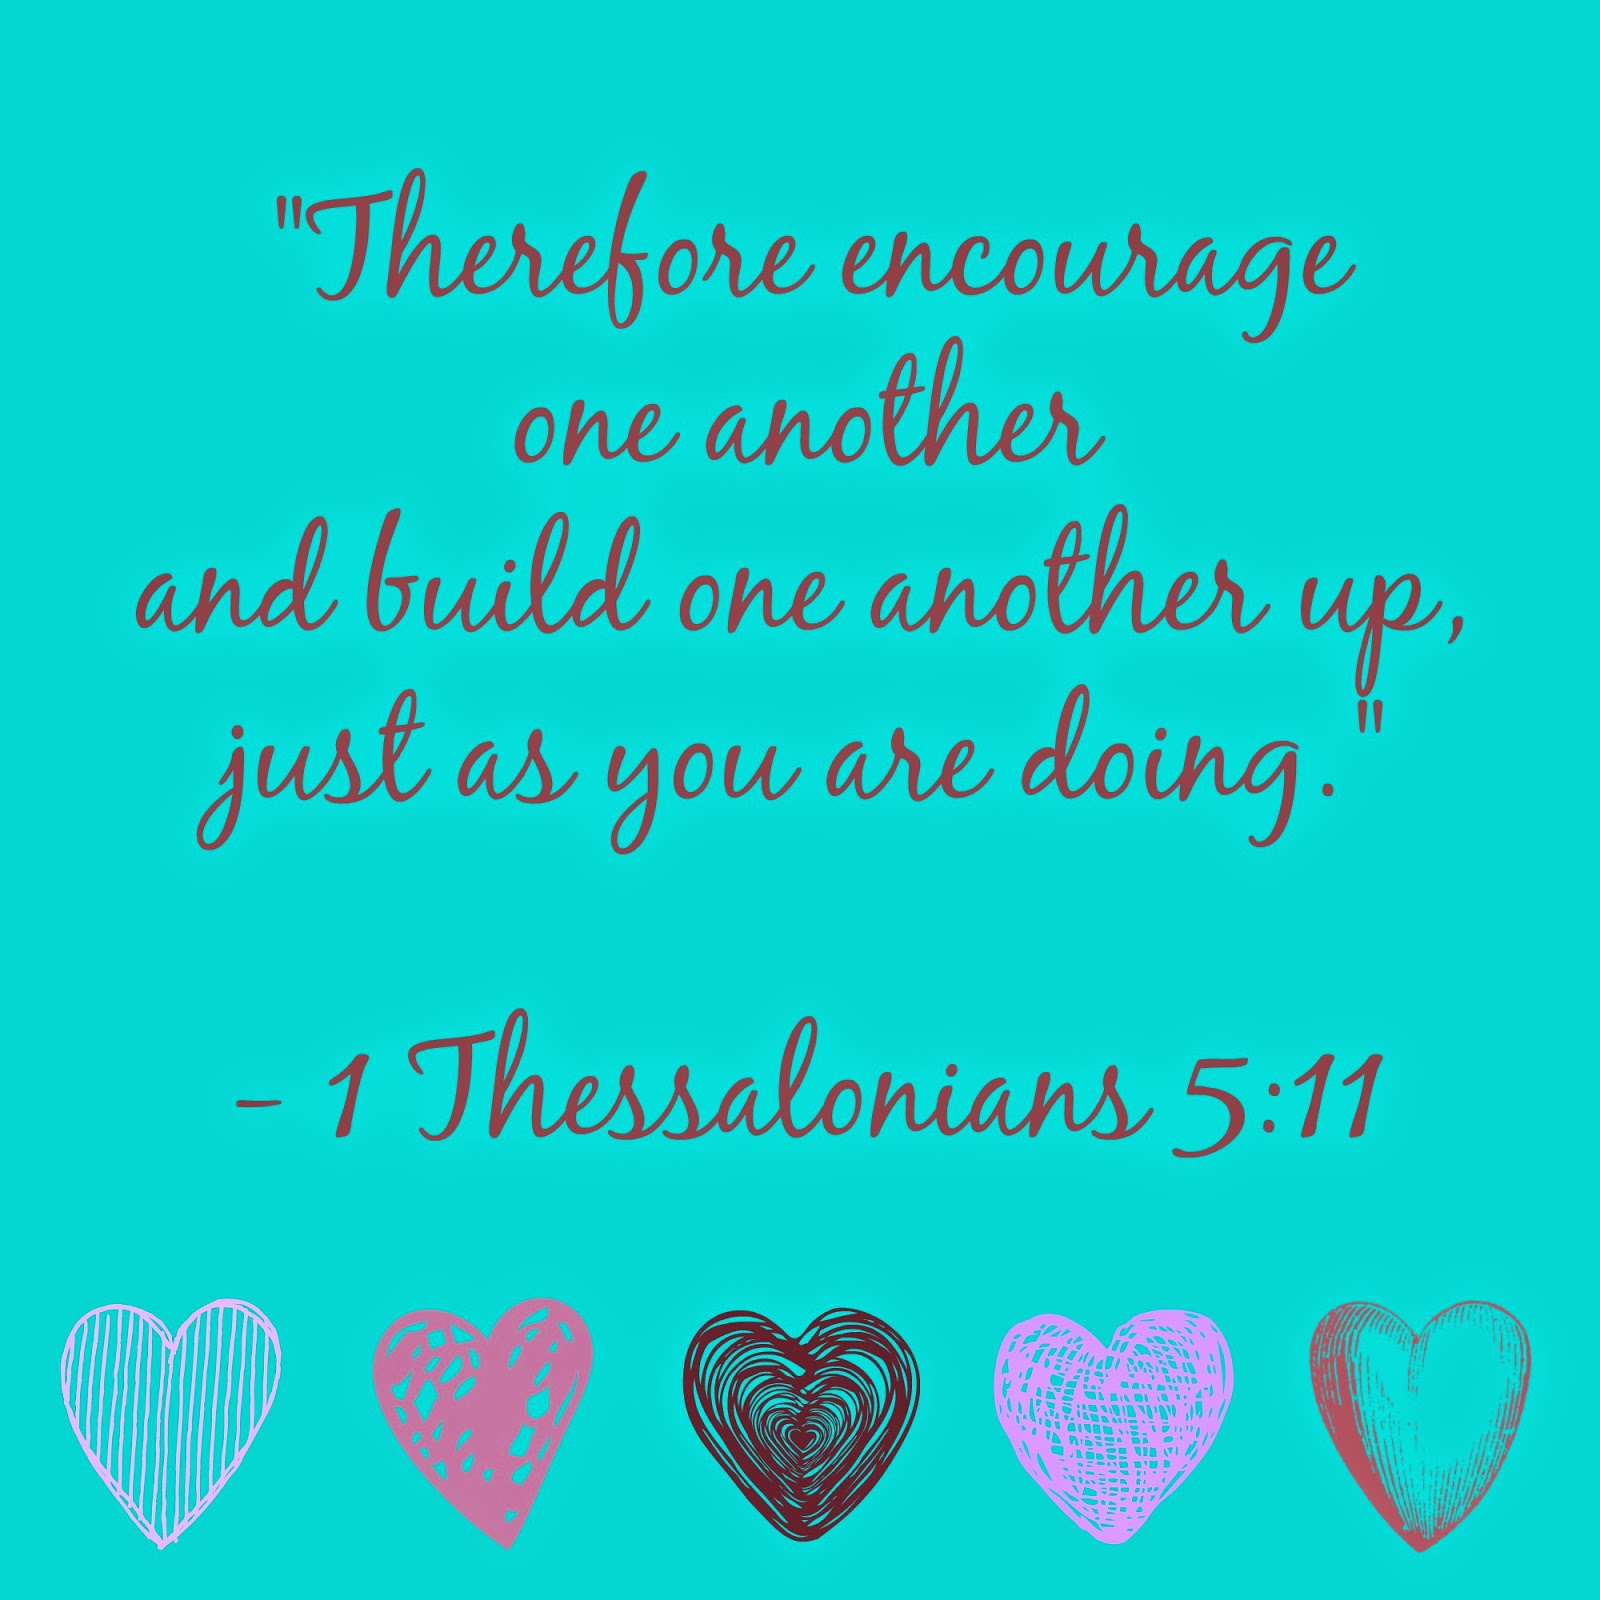 """Therefore encourage one another and build one another up, just as you are doing."" #amysgift"